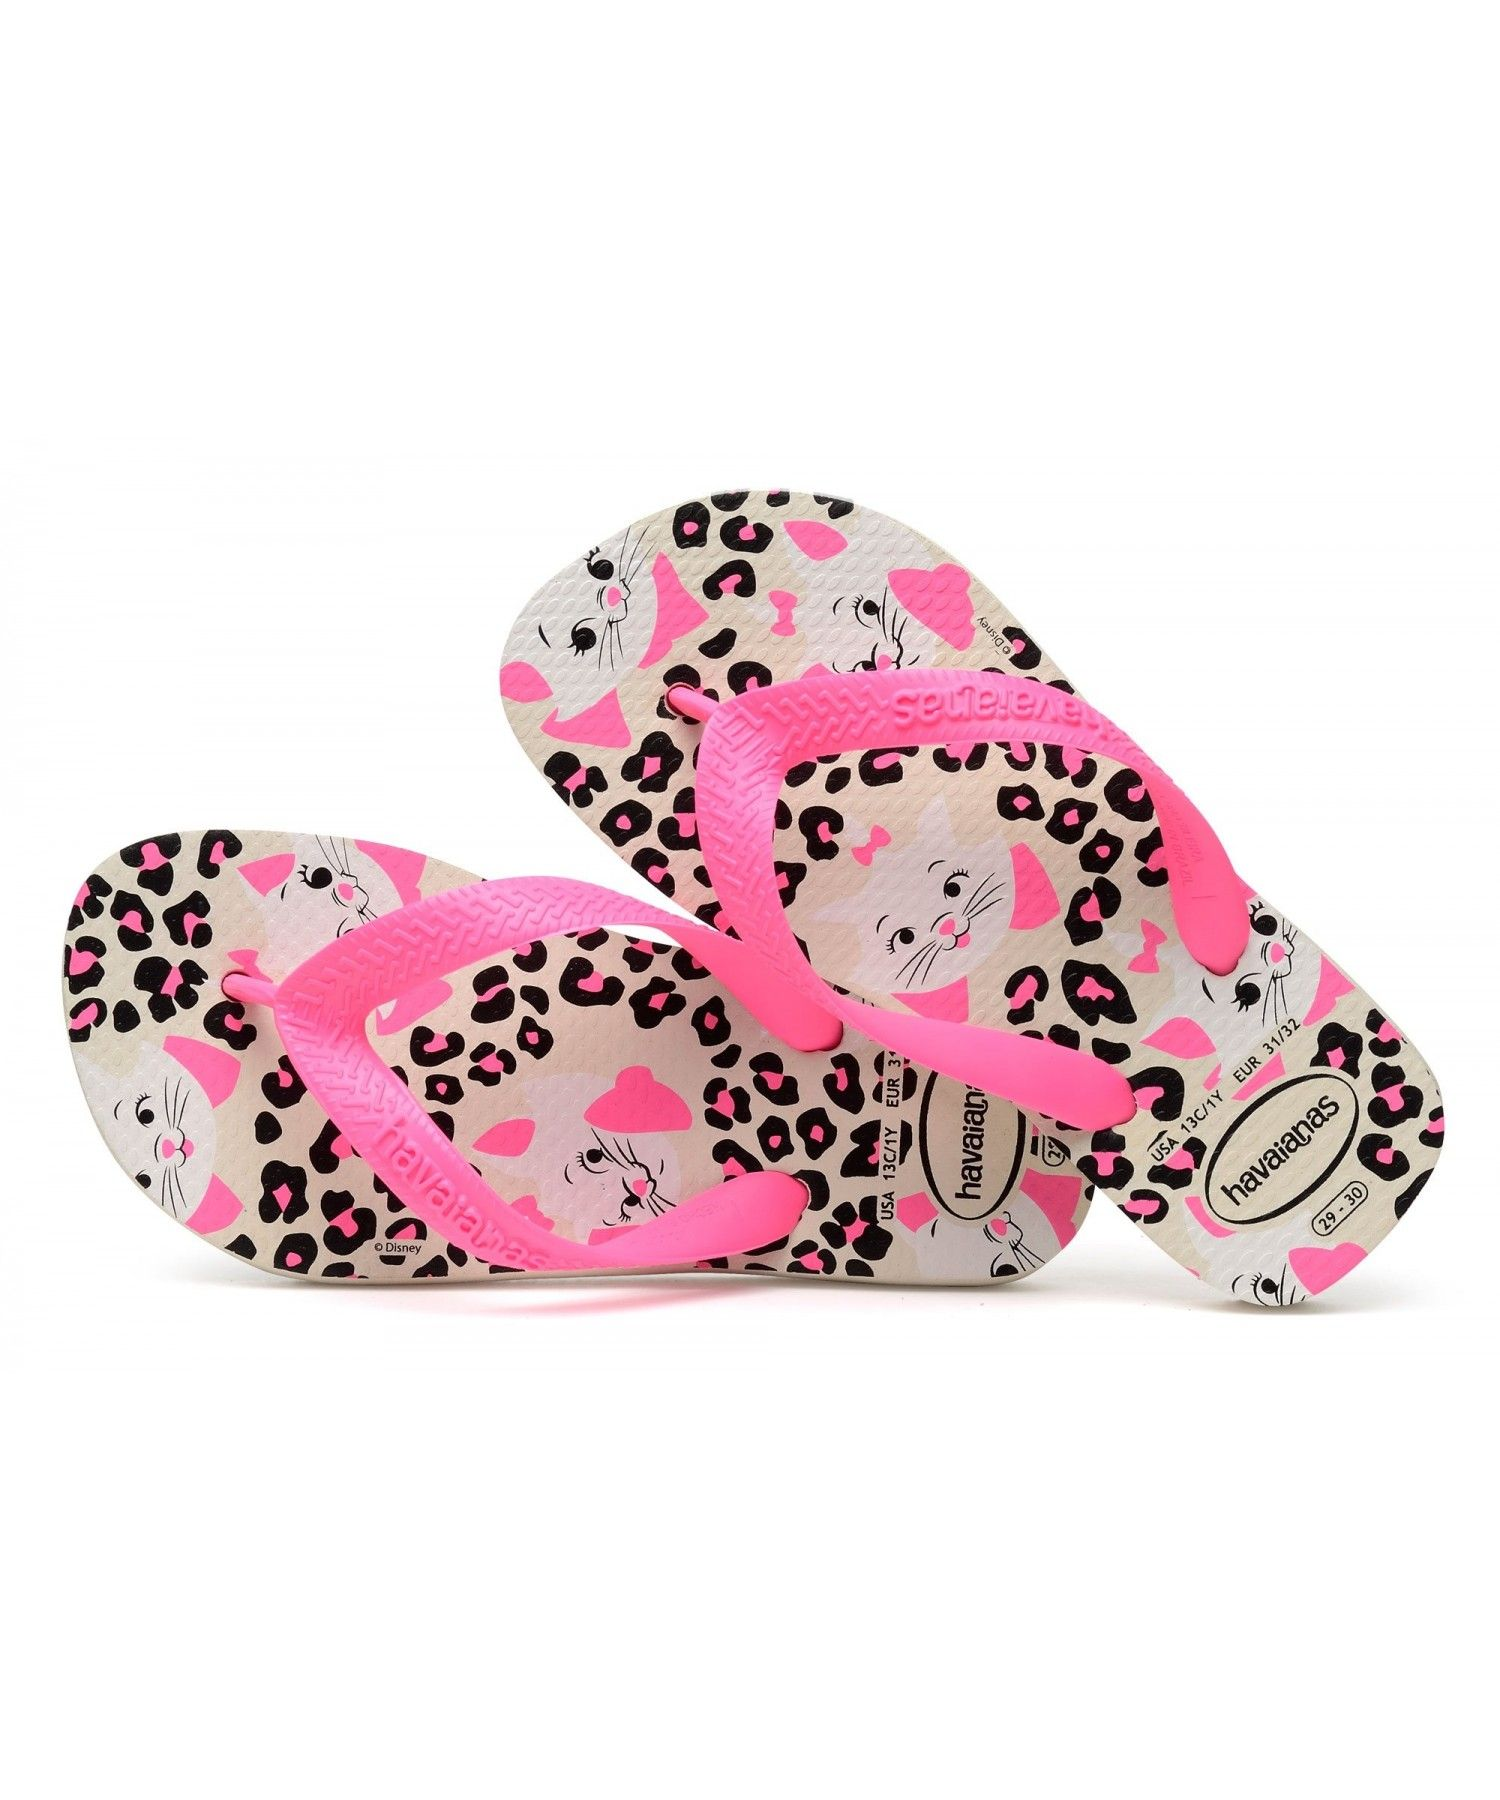 Havaianas Hav. Kids Top Marie at Eb Vloed Lifestyle 4846eb282d3